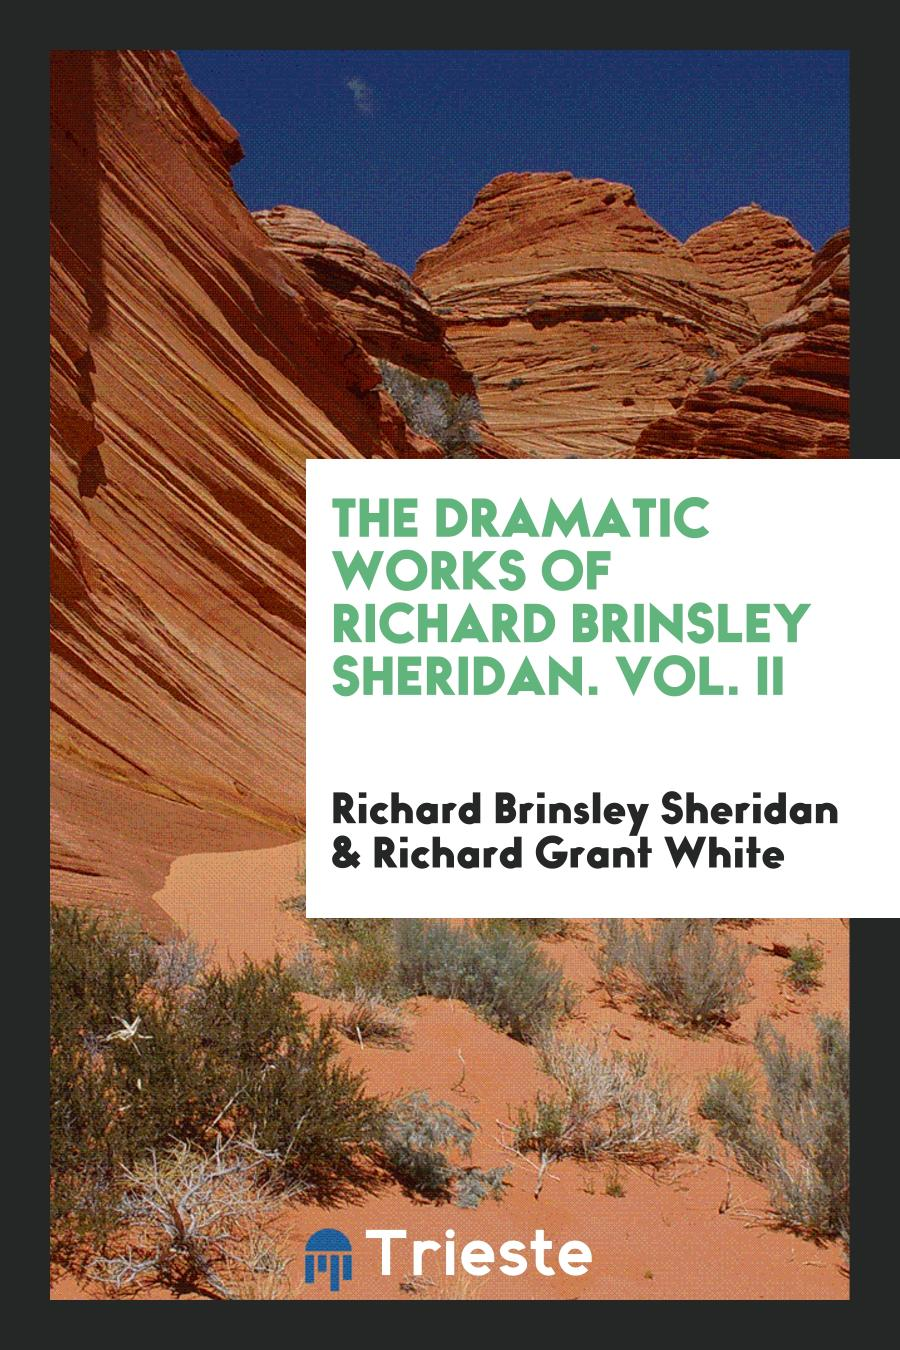 Richard Brinsley  Sheridan, Richard Grant  White - The Dramatic Works of Richard Brinsley Sheridan. Vol. II